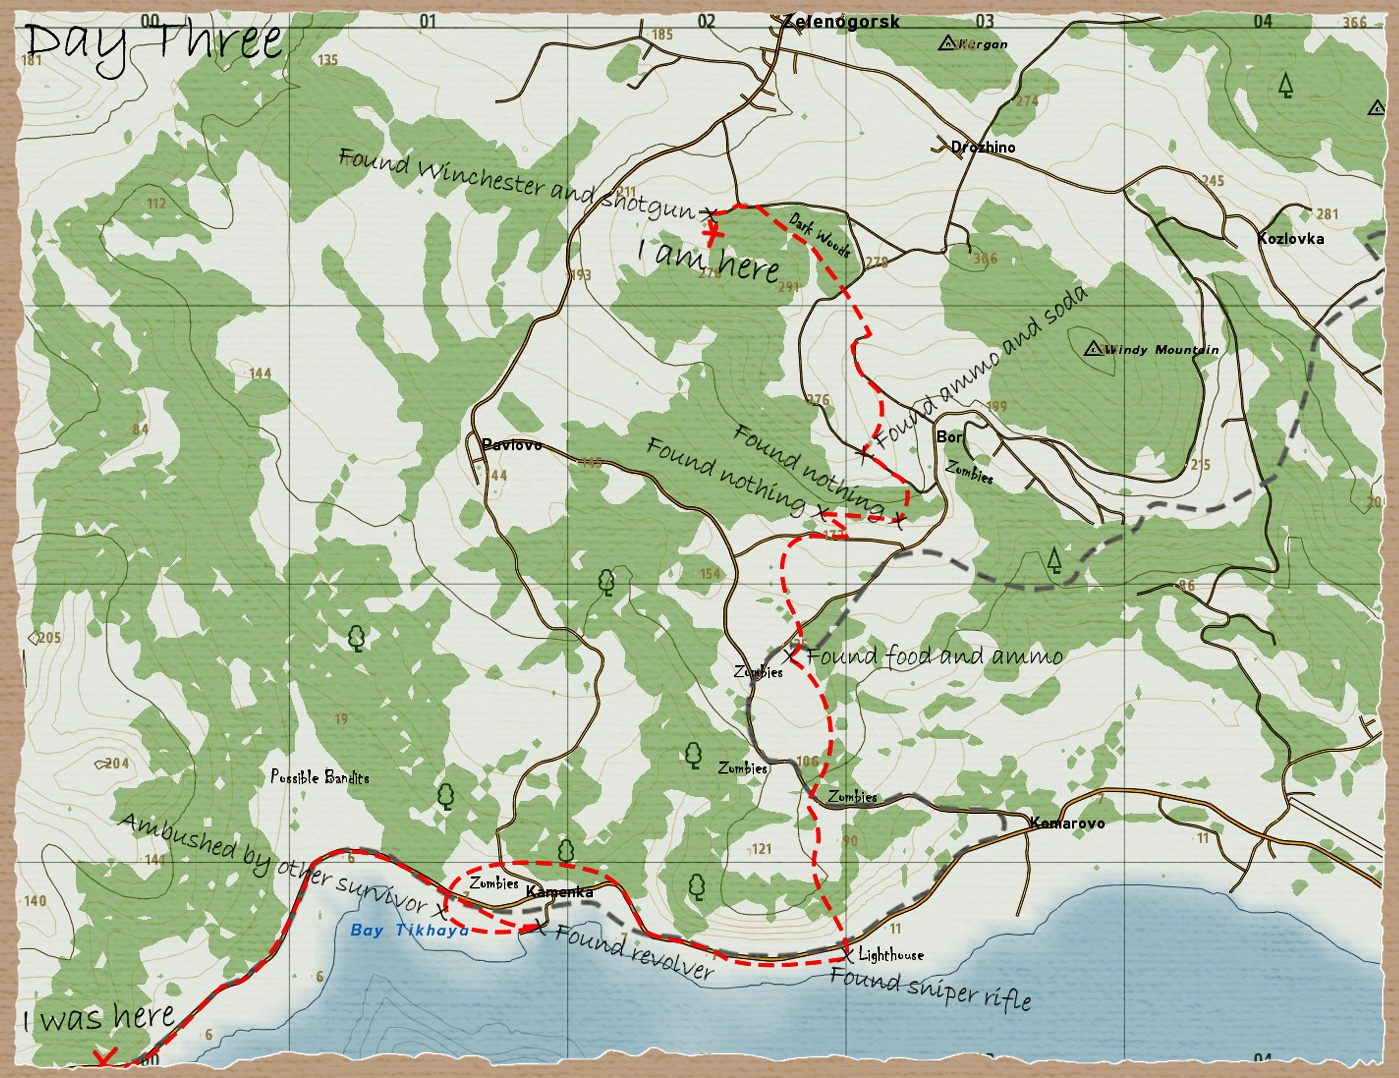 dayz map android apps on google play play google com dayz database ...